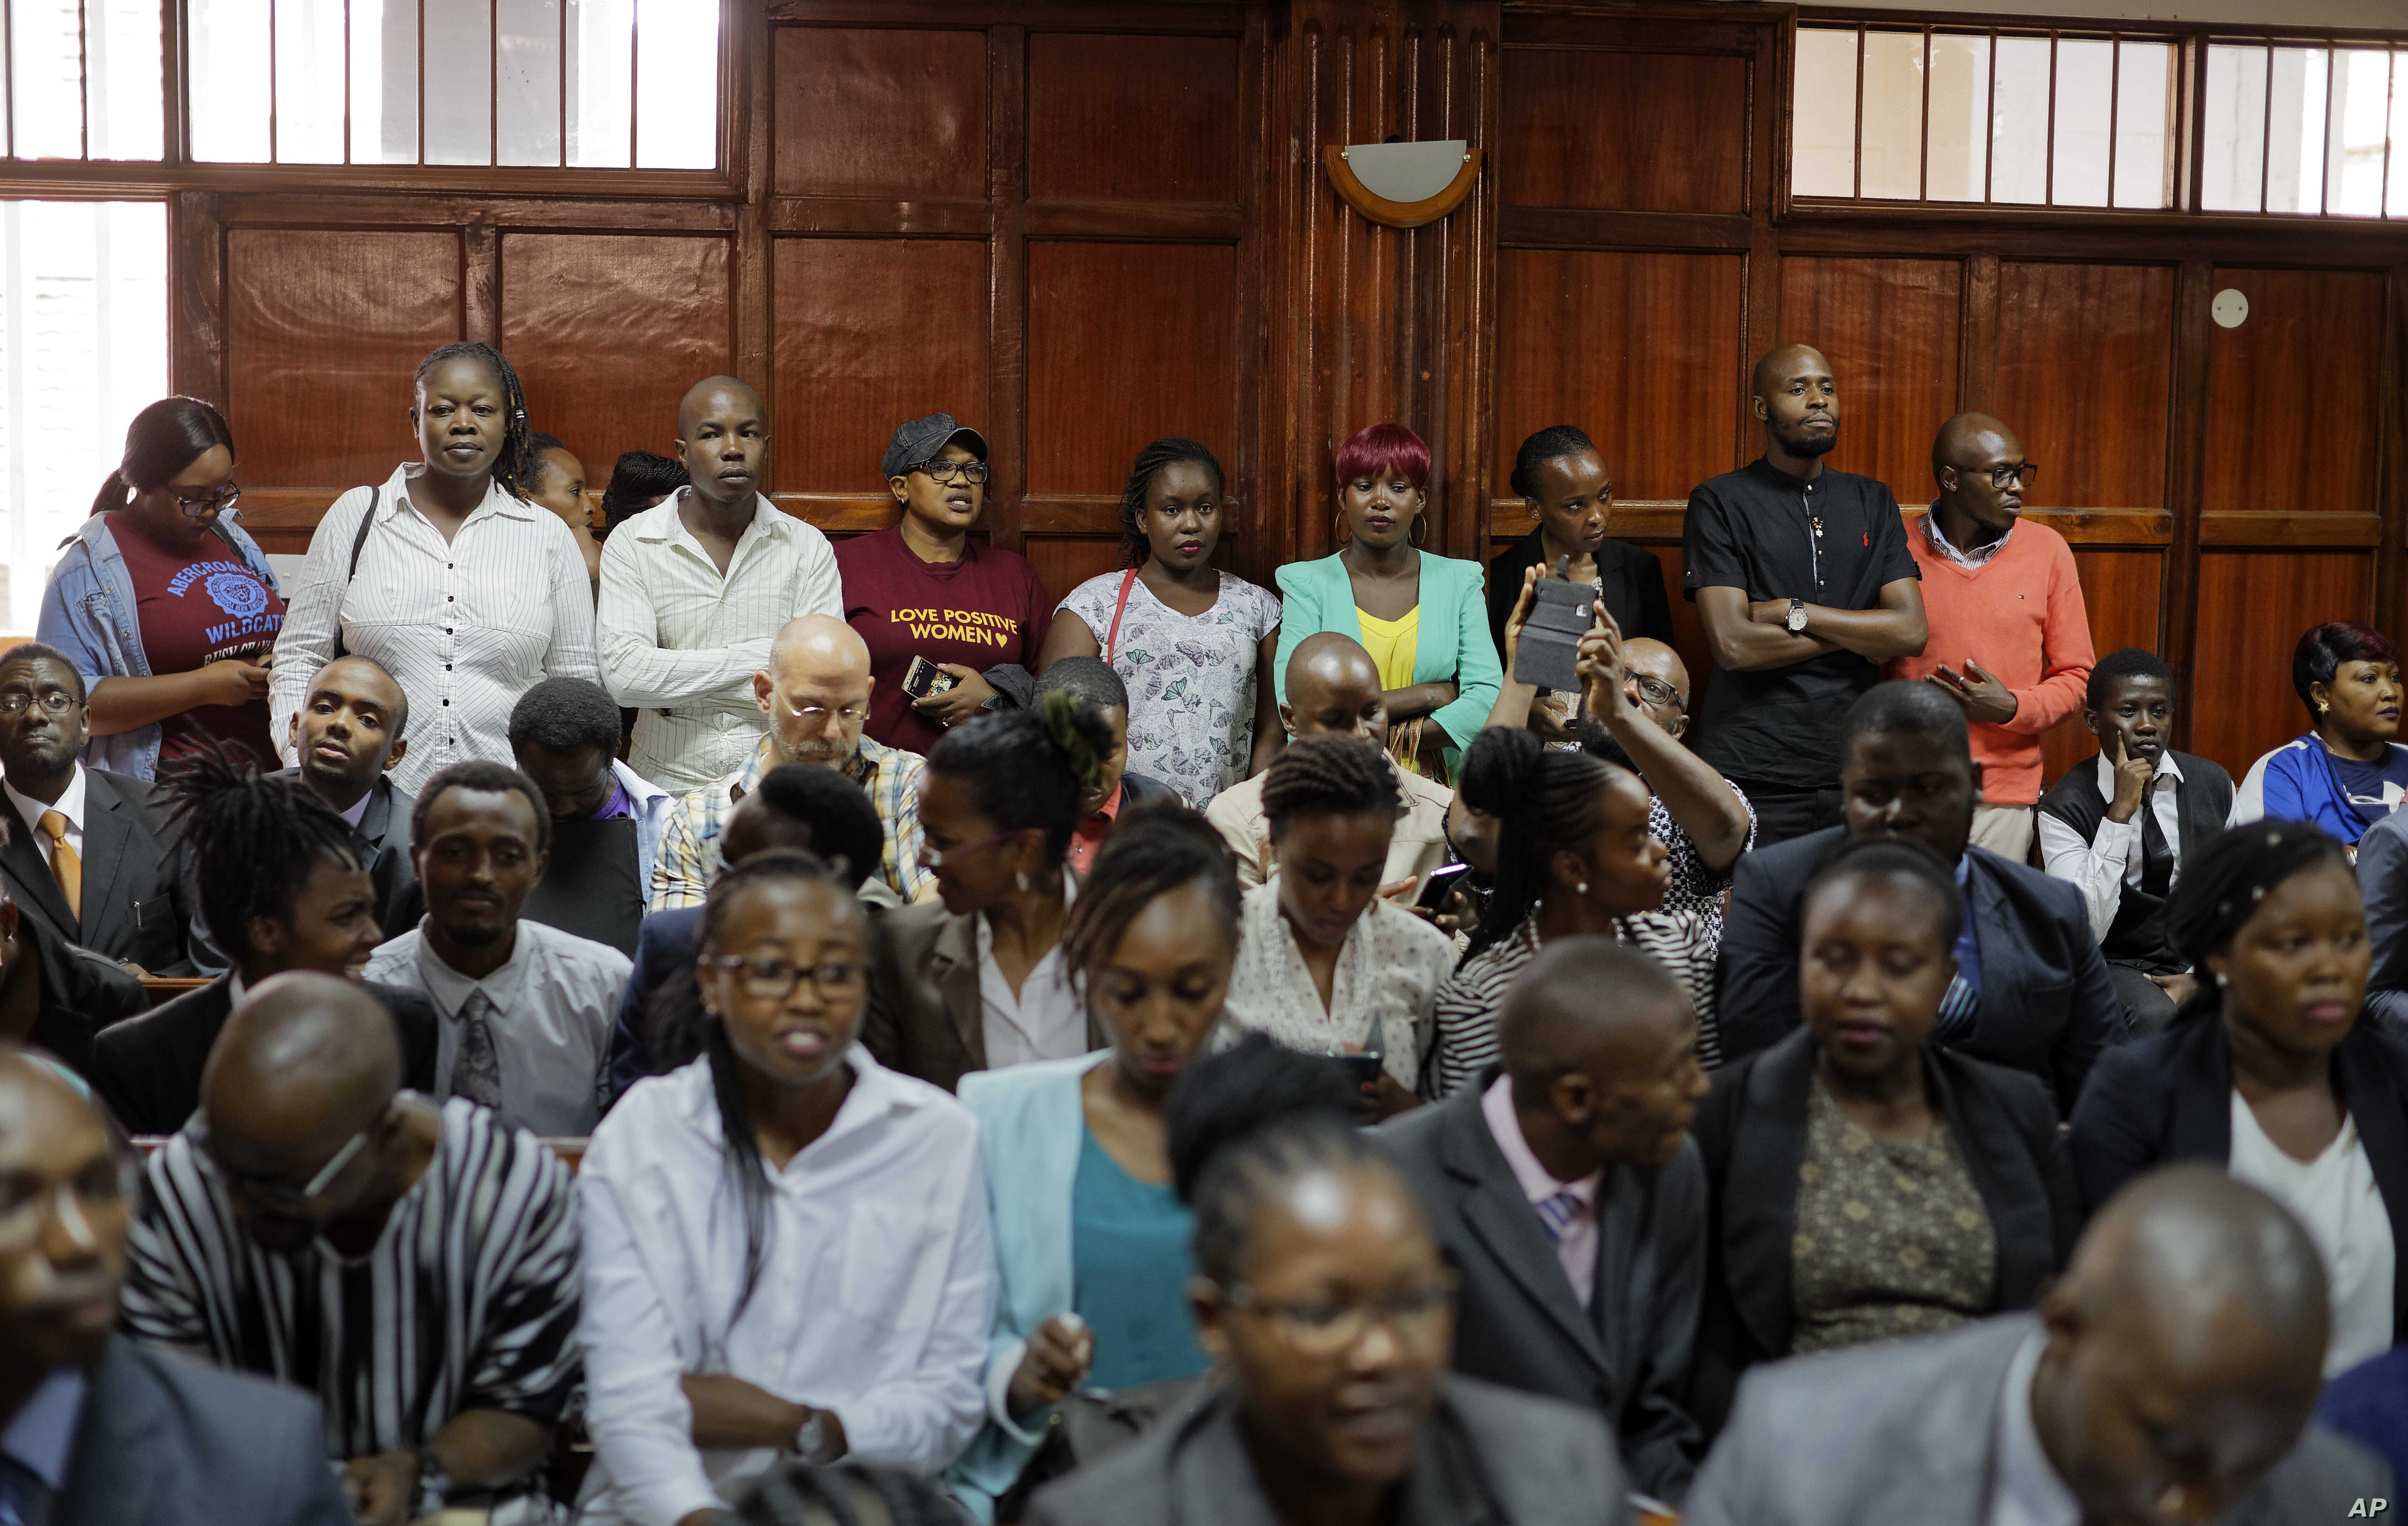 Members of the public fill the courtroom as the High Court in Kenya begins hearing arguments in a case challenging parts of the penal code seen as targeting the lesbian, gay, bisexual and transgender communities, at the High Court in Nairobi, Kenya, ...